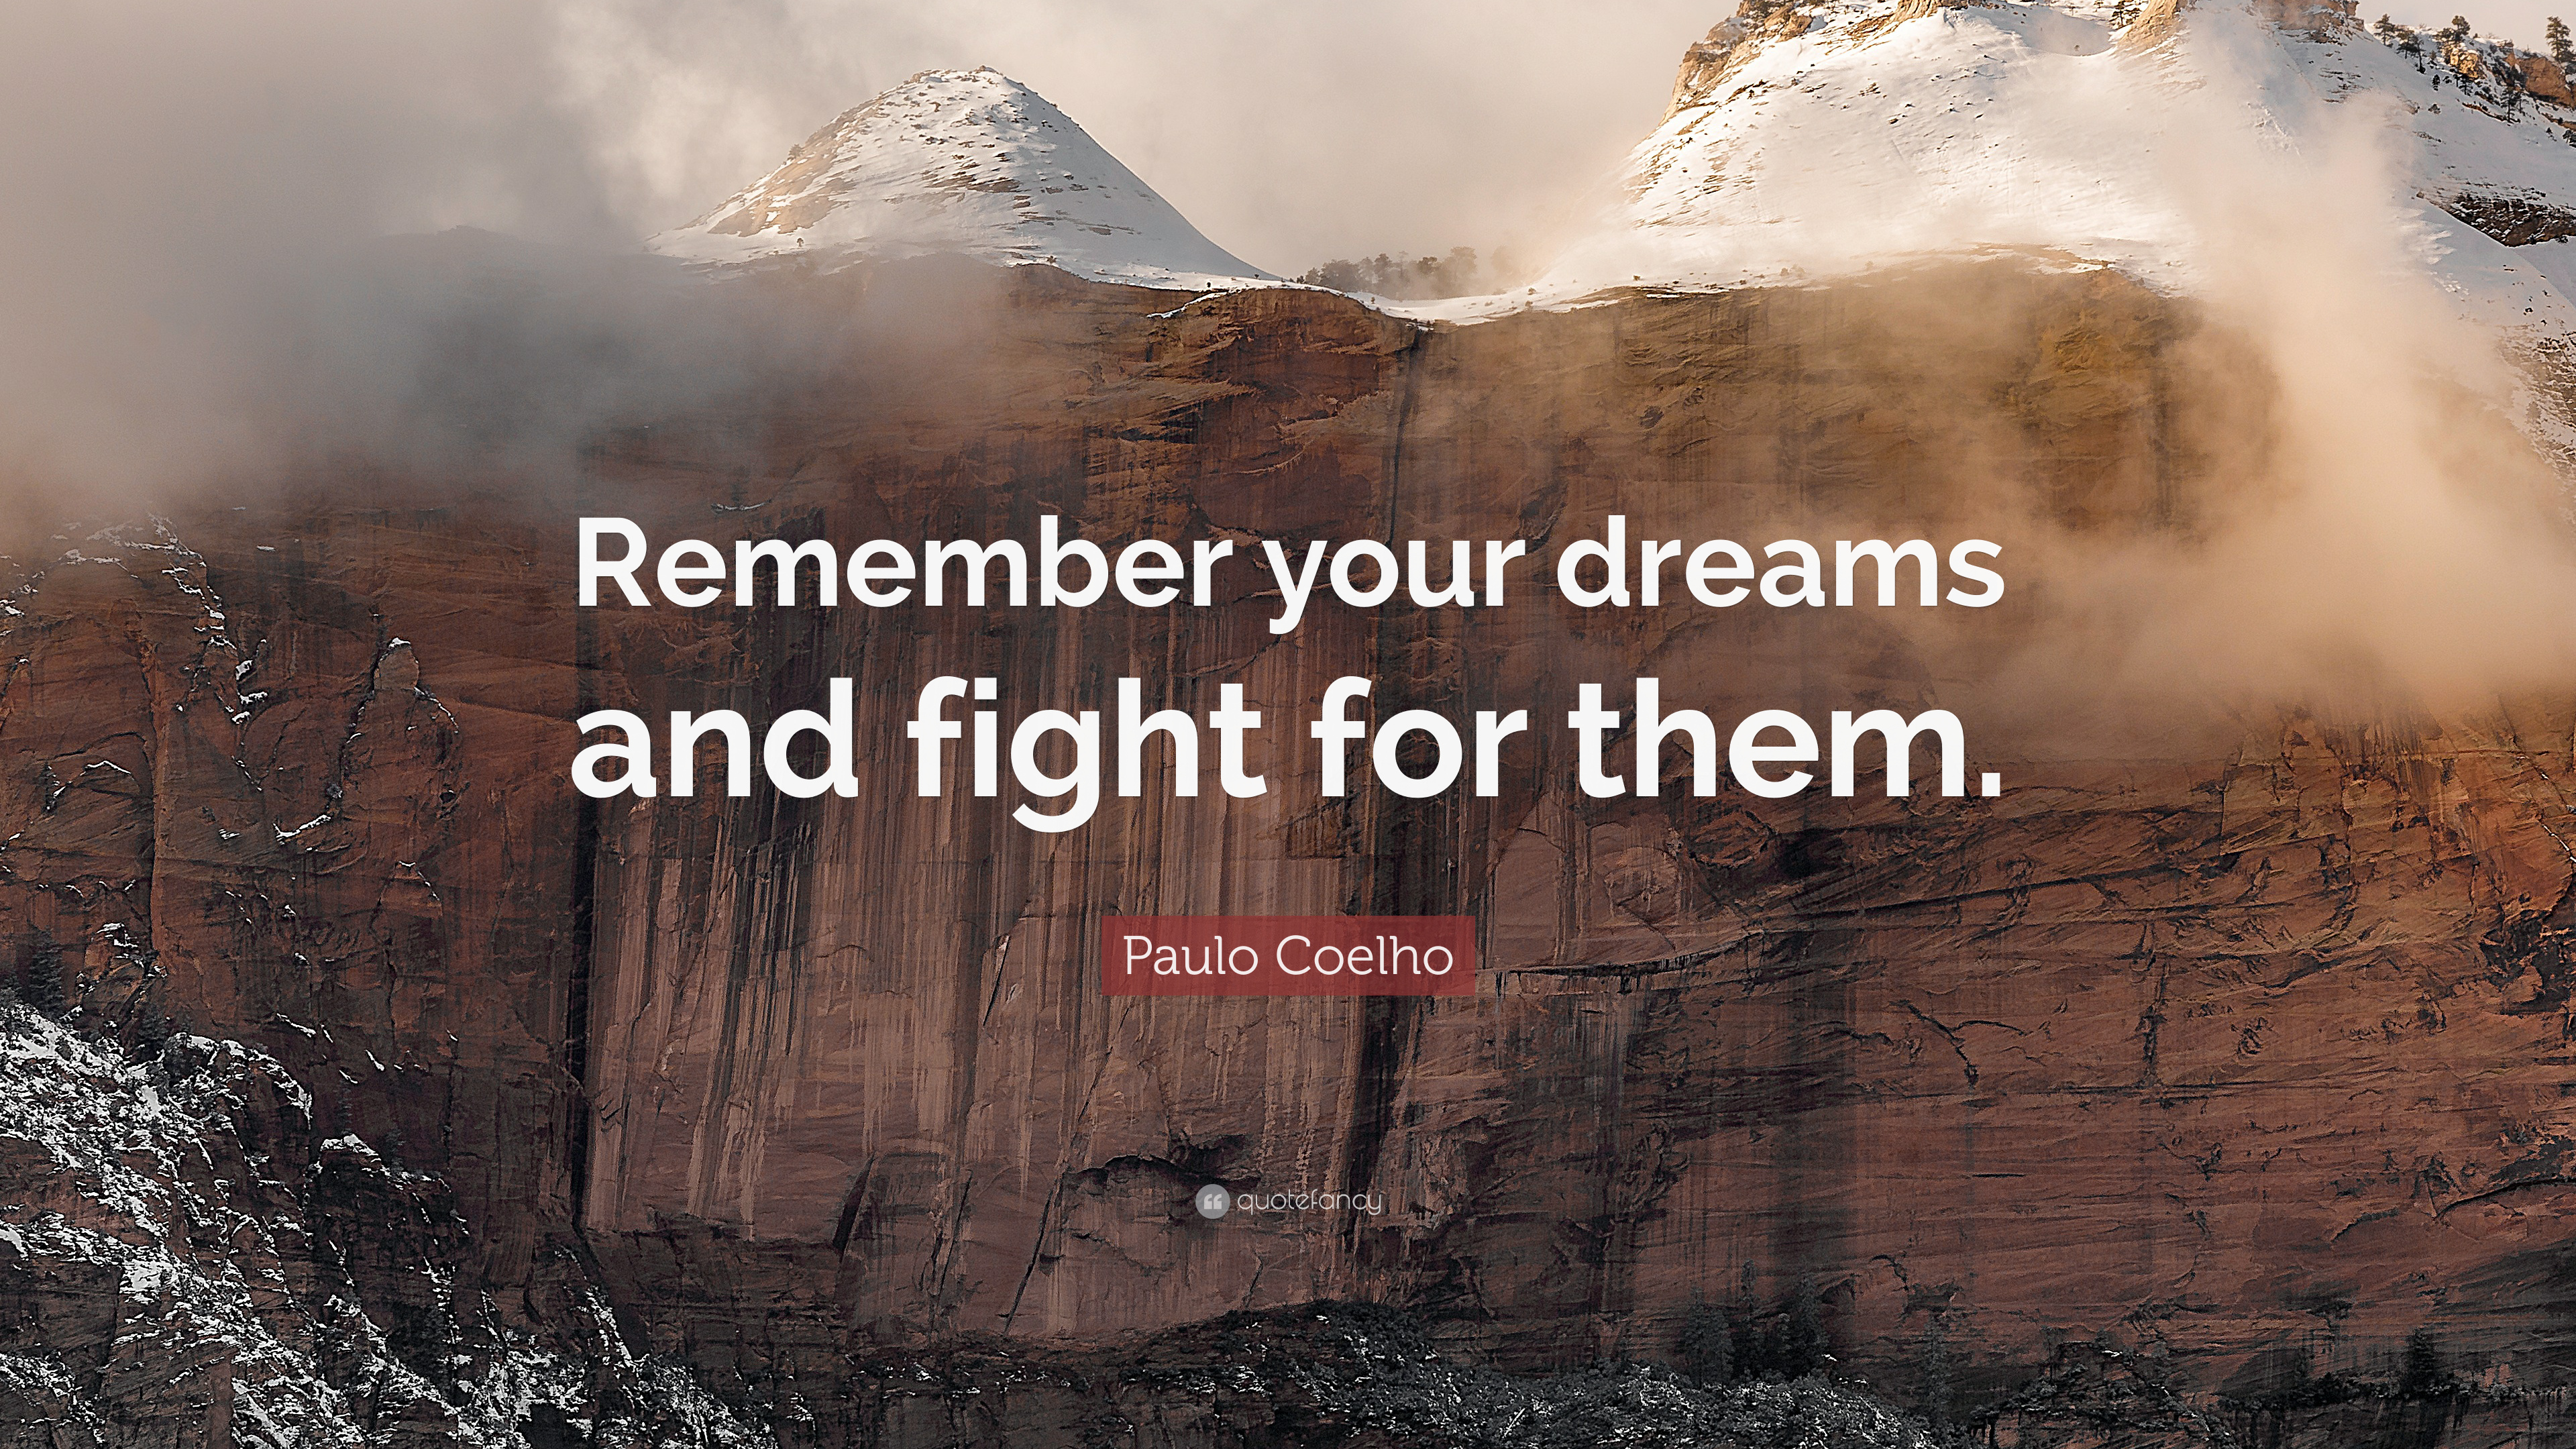 Kết quả hình ảnh cho Remember your dreams and fight for them